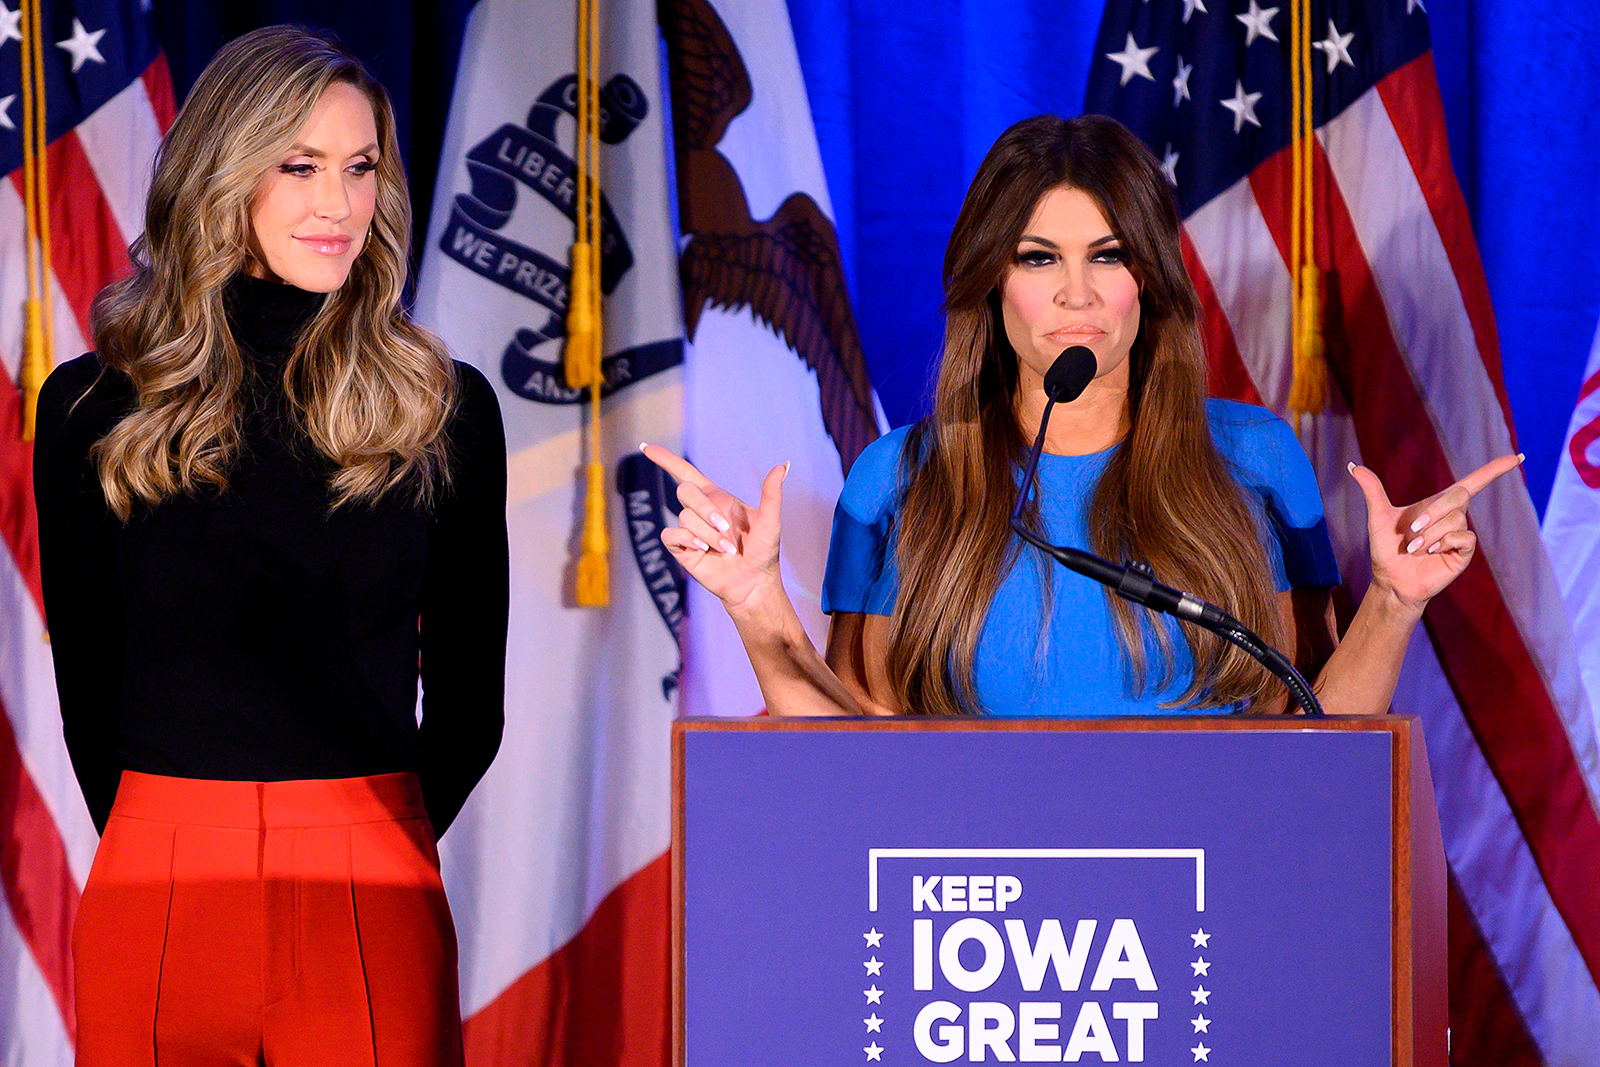 """Donald Trump Jr's girlfriend Kimberly Guilfoyle, right, speaks with Lara Trump, the wife of Eric Trump, during a """"Keep Iowa Great"""" press conference in Des Moines, Iowa, on February 3."""